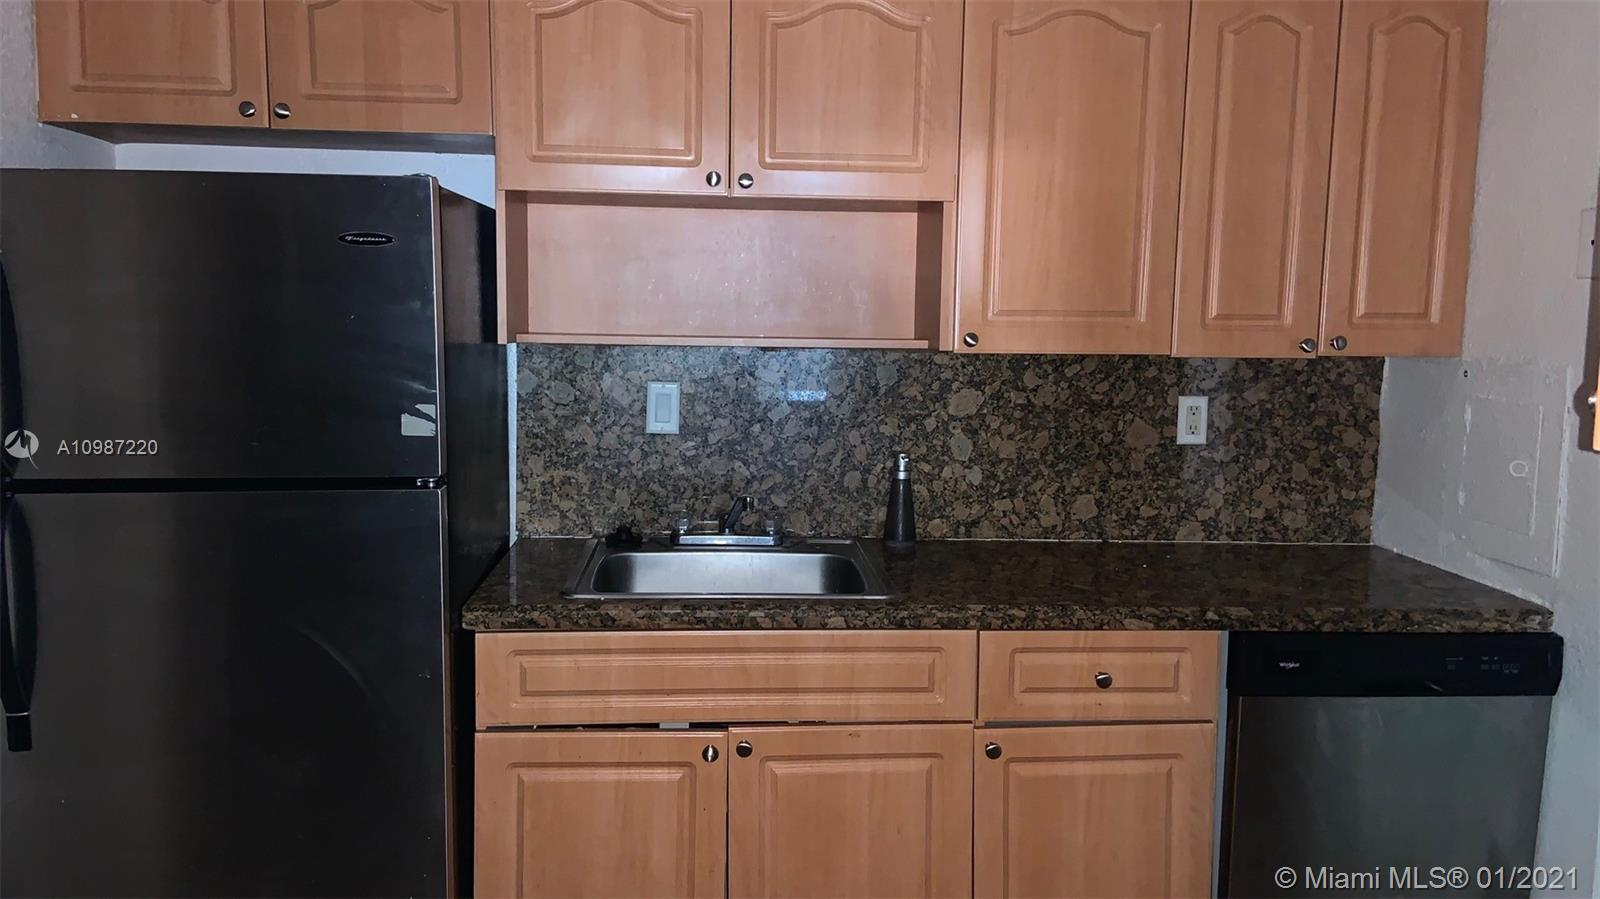 7945 SW 104th St # 105C, Miami, Florida 33156, 2 Bedrooms Bedrooms, ,2 BathroomsBathrooms,Residential,For Sale,7945 SW 104th St # 105C,A10987220